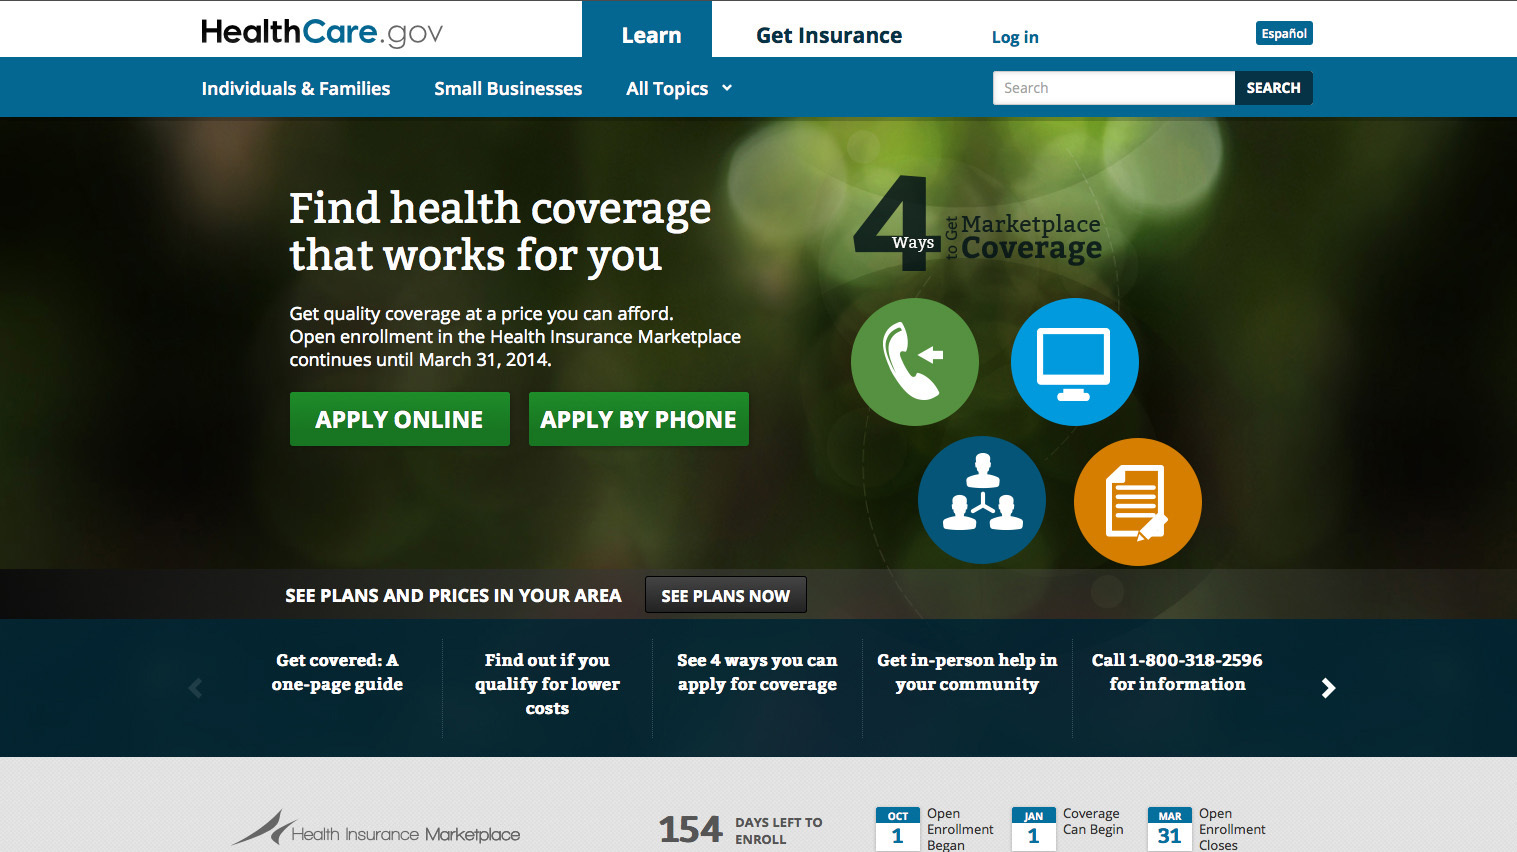 A New Worry Looms Online For The Affordable Care Act